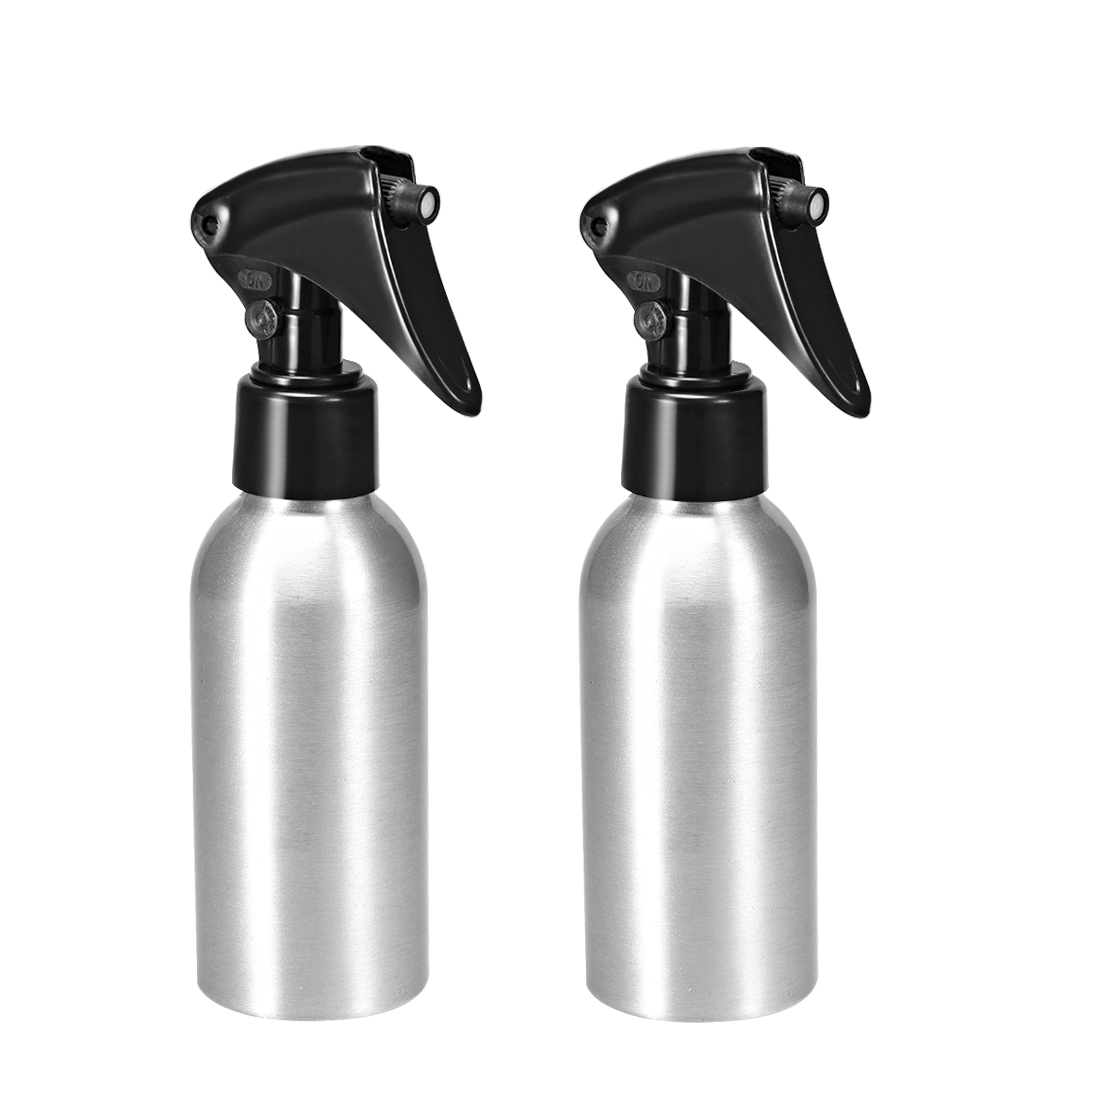 2pcs 3oz/100ml Aluminium Spray Bottle with Sprayer, Empty Refillable Container